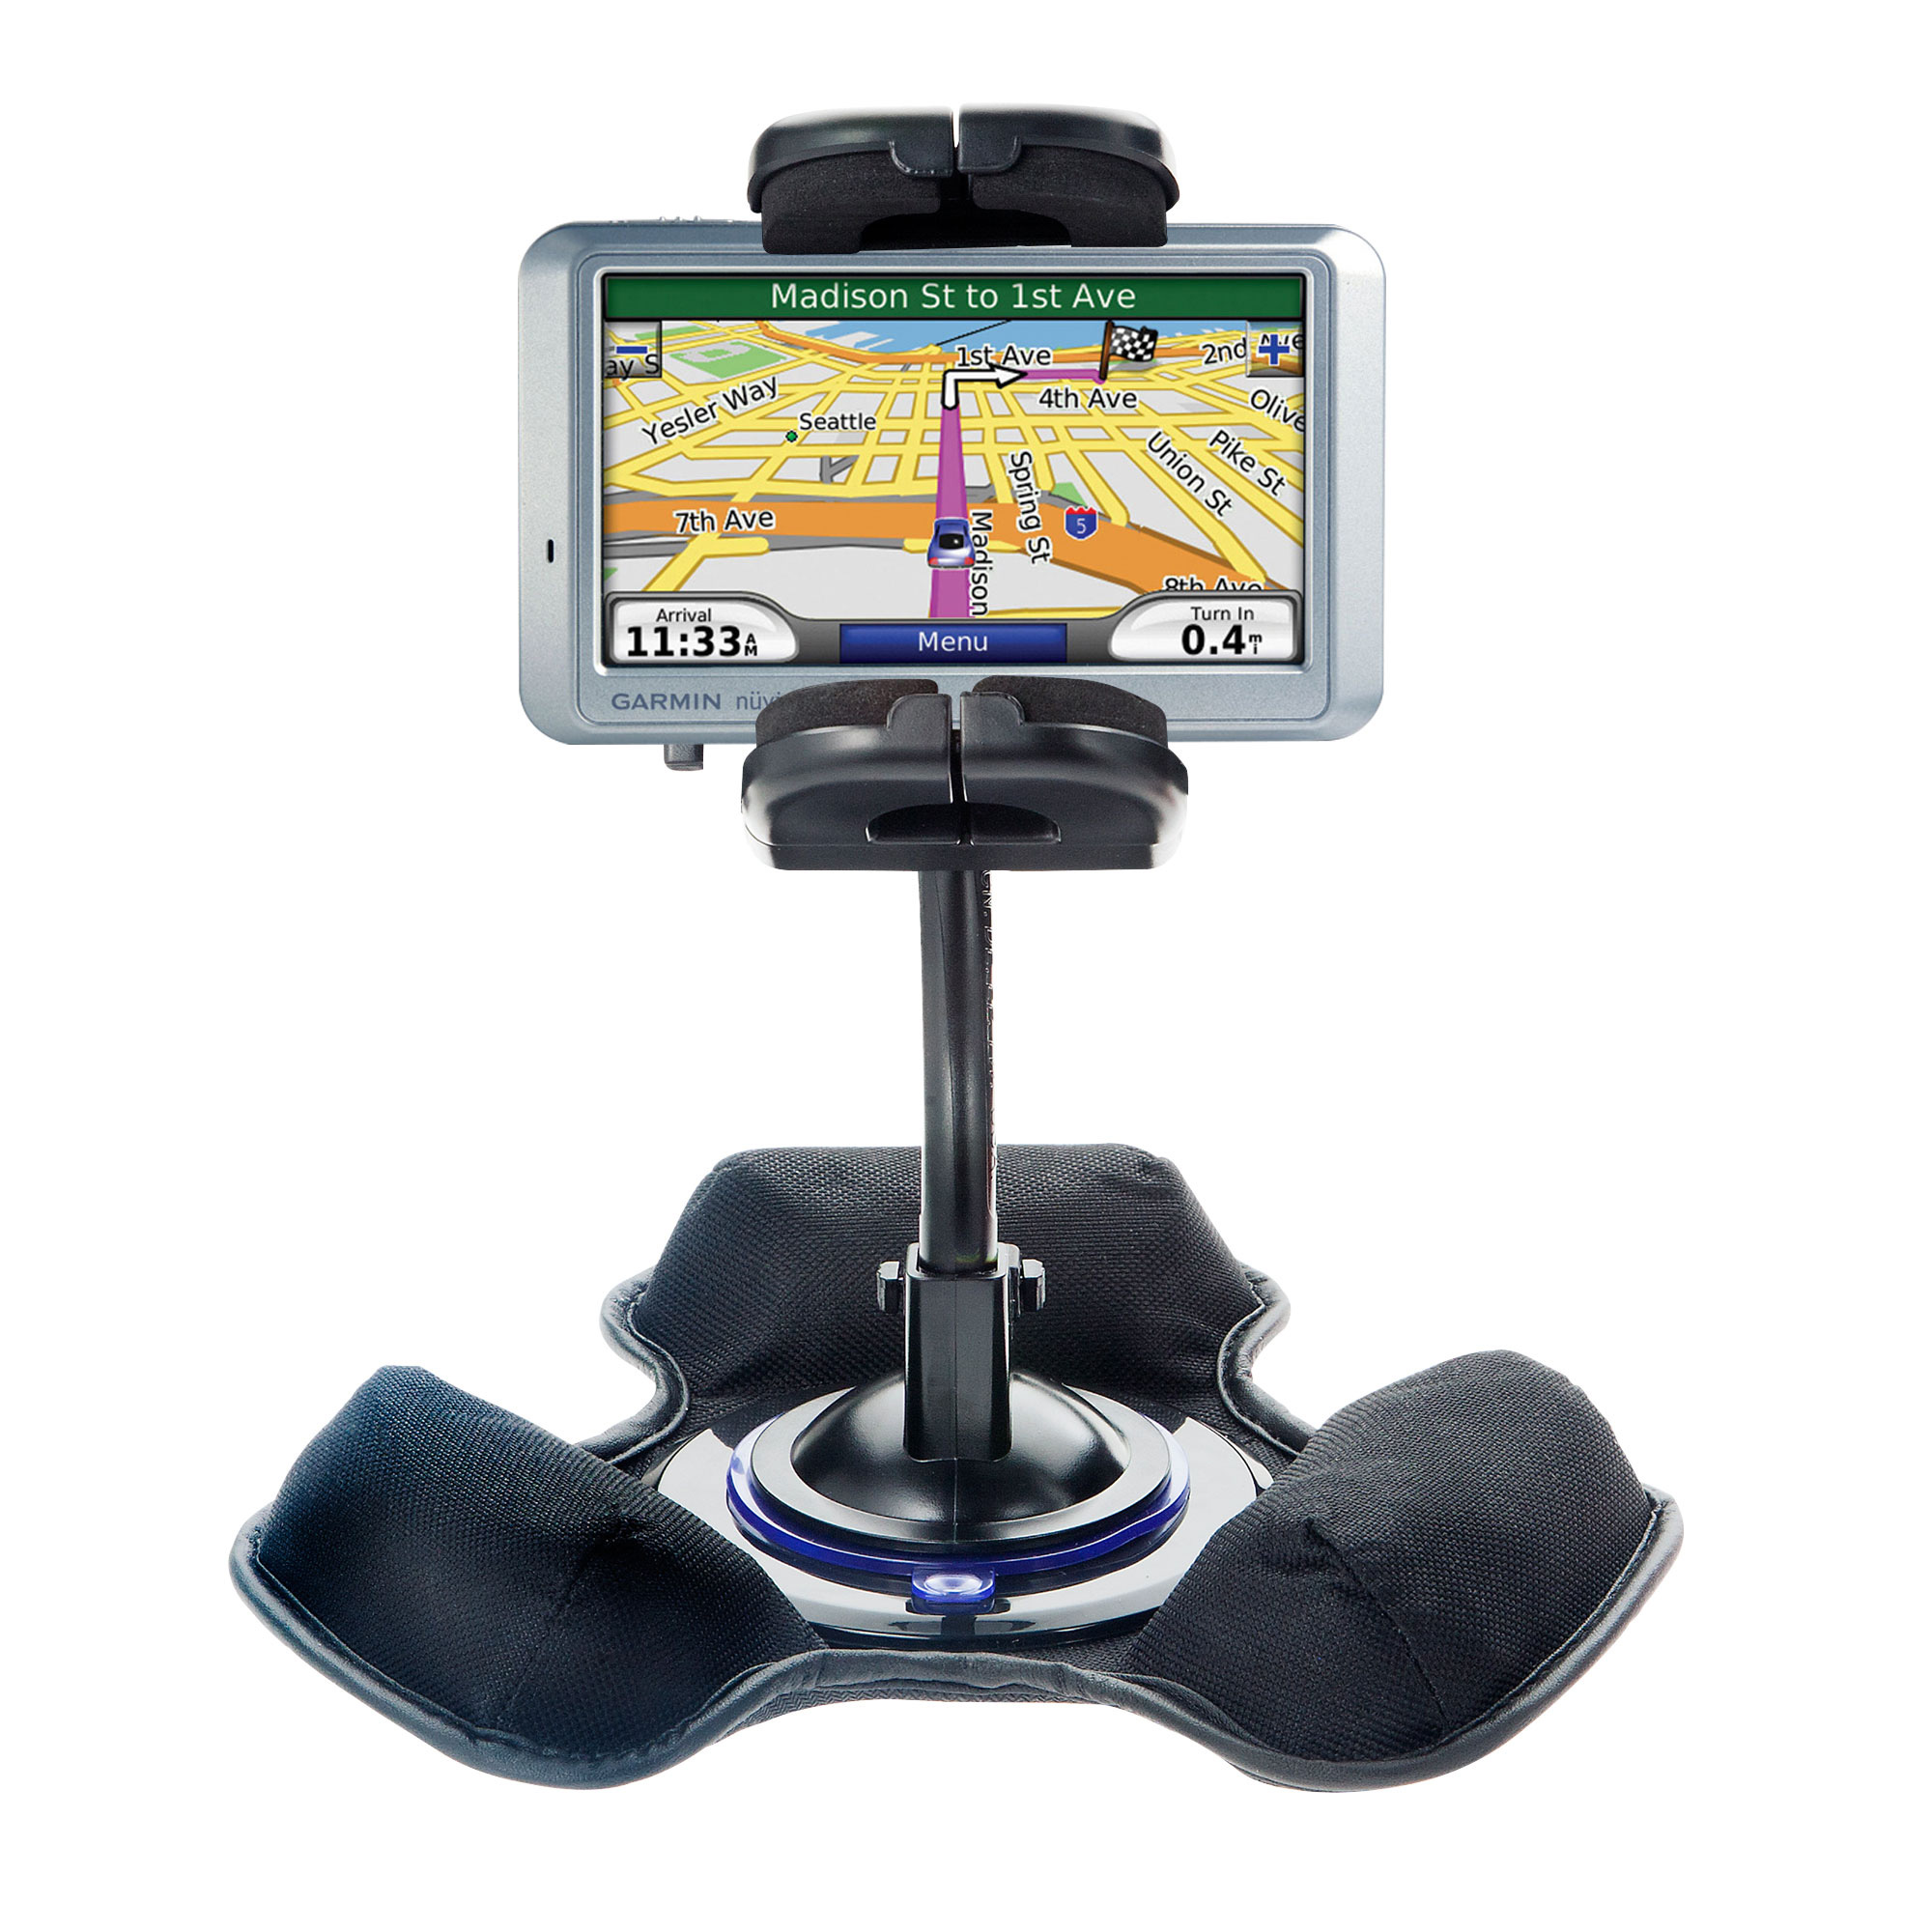 Dash and Windshield Holder compatible with the Garmin Nuvi 765T